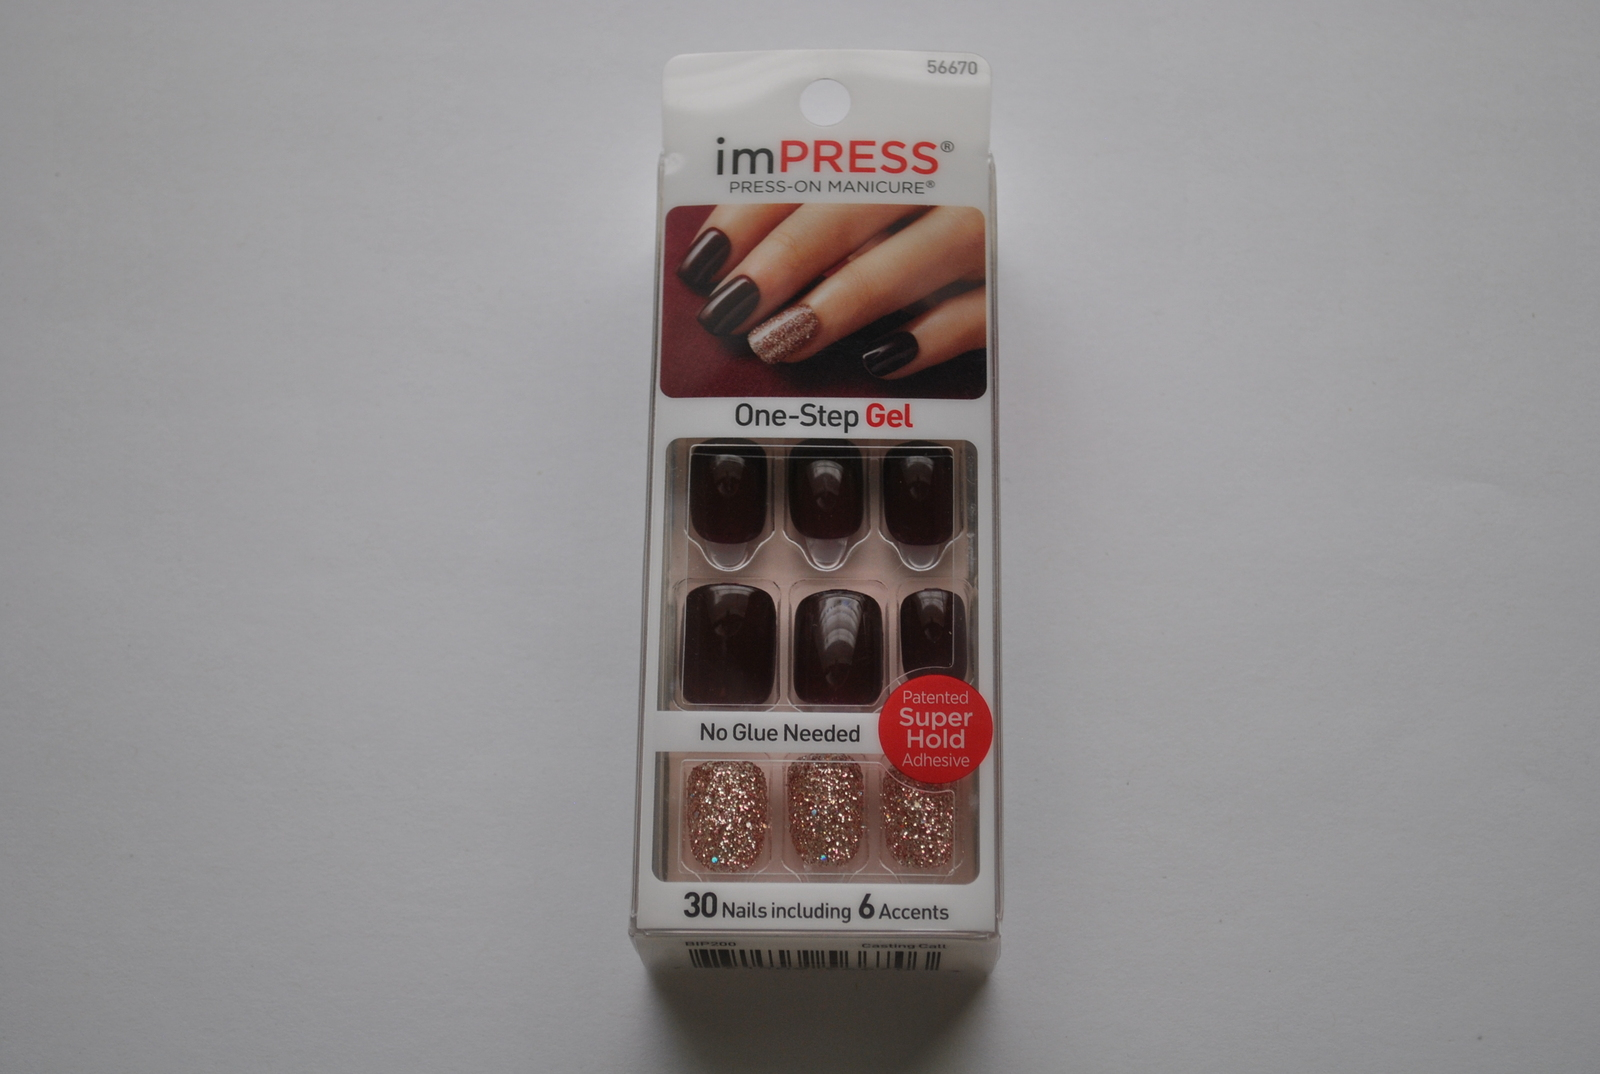 Primary image for Kiss Impress Press-on Manicure One-Step Gel Nails - Casting Call (Pack of 1)